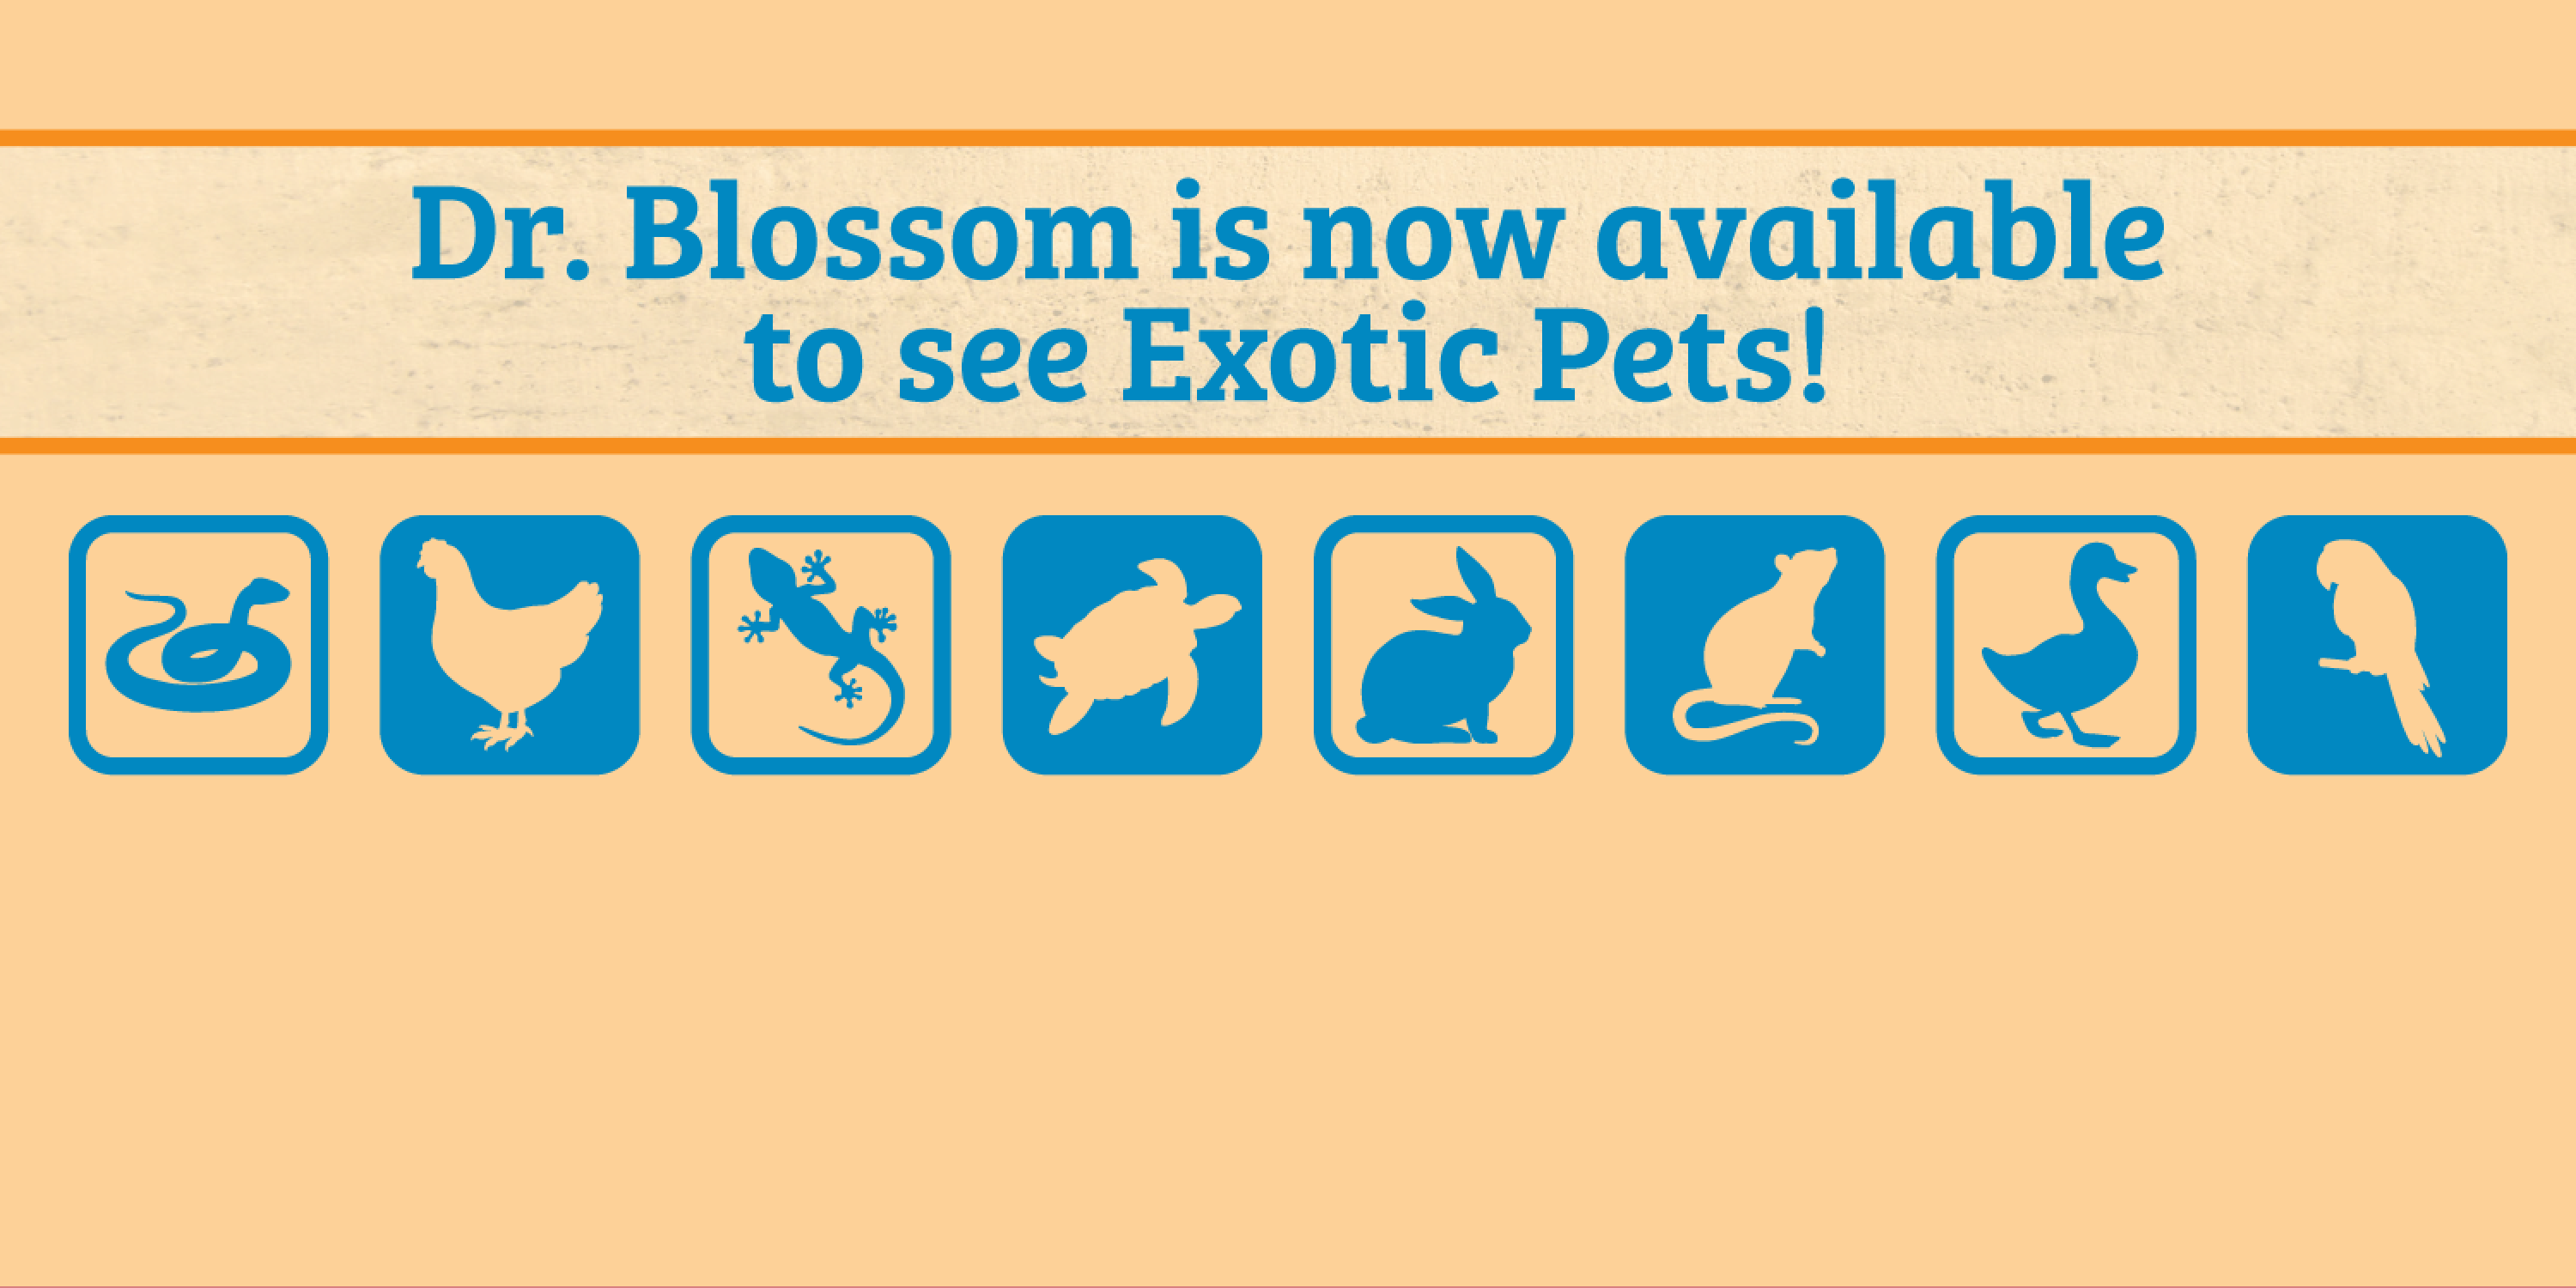 Dr. Blossom is now available to see Exotic Pets!